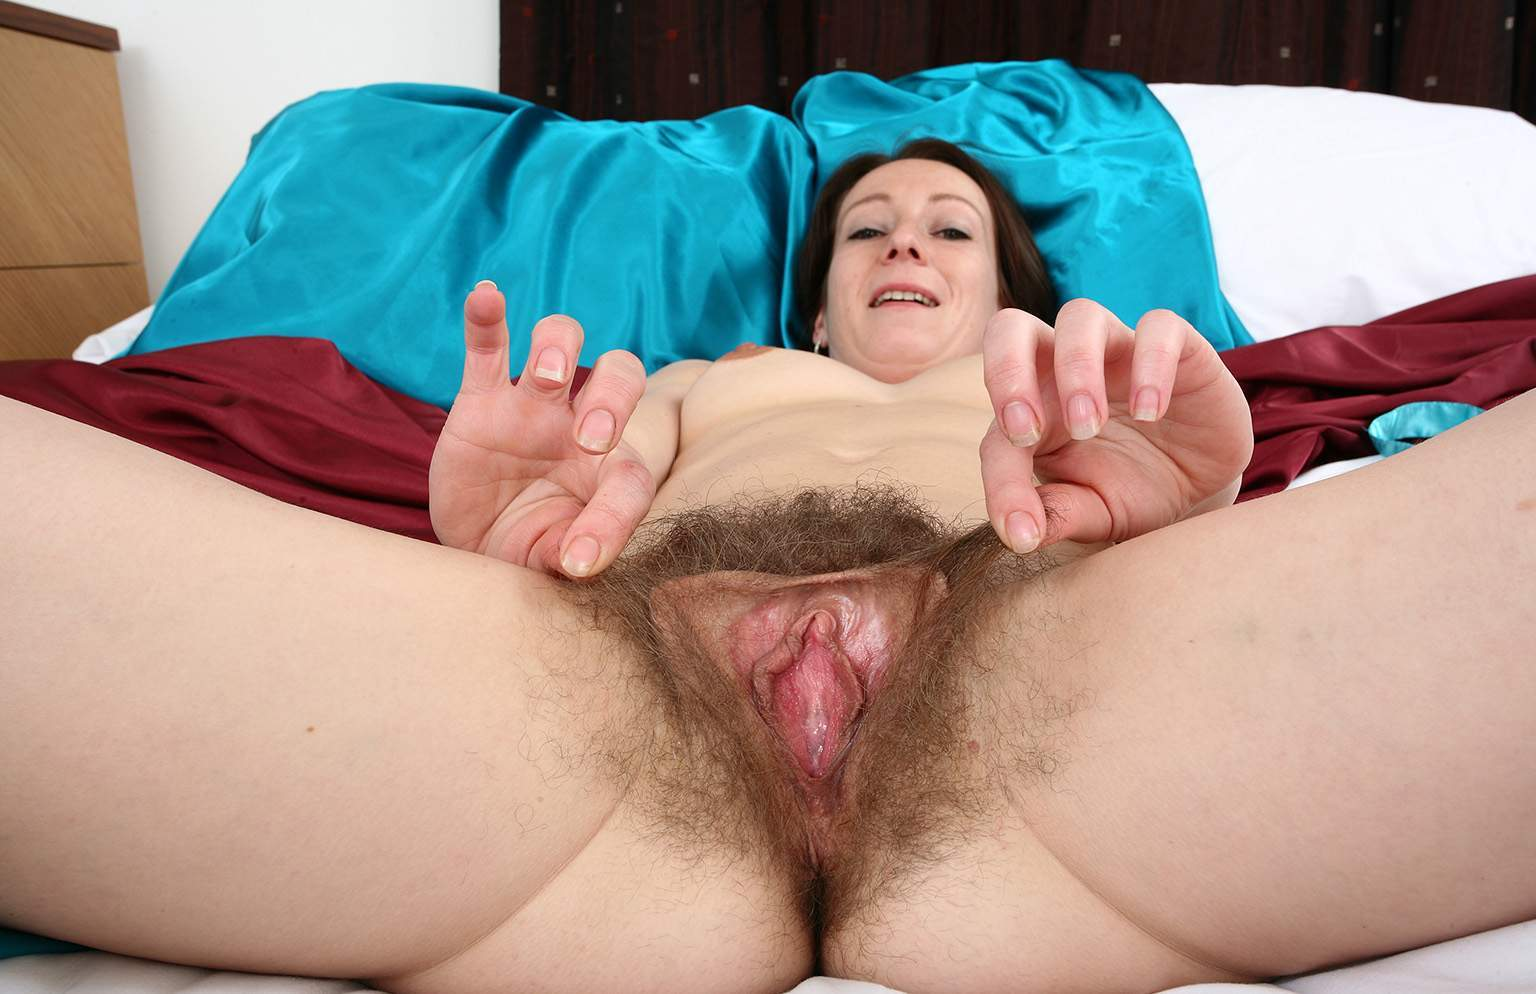 Black women hairy vagina